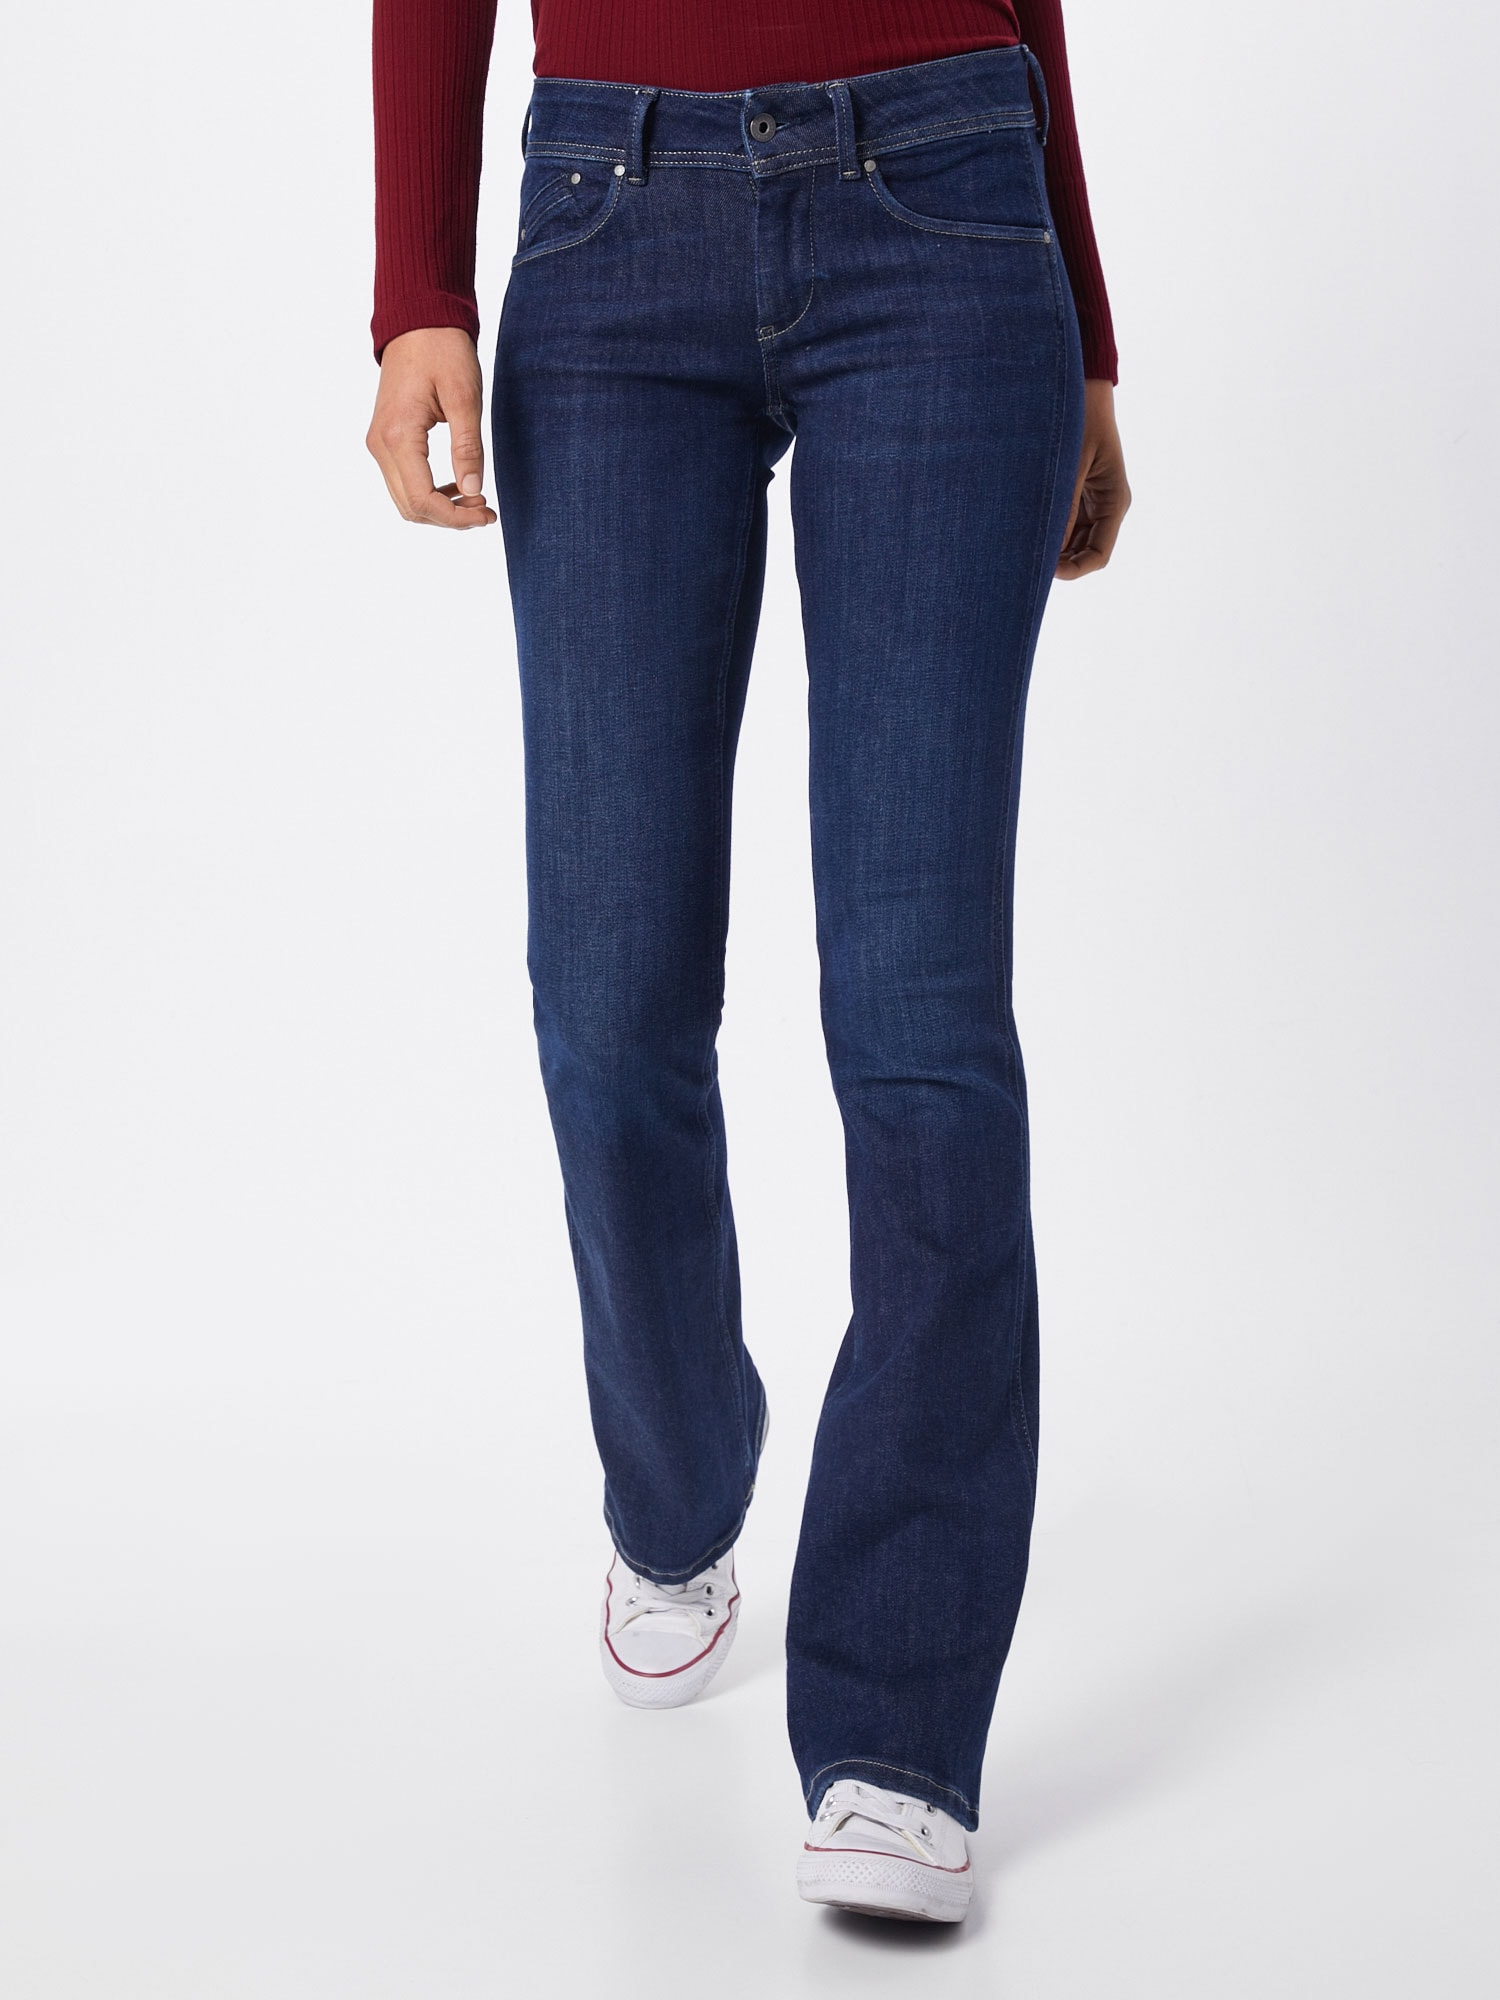 pepe jeans - Jeans-Schlaghose 'Pimlico'